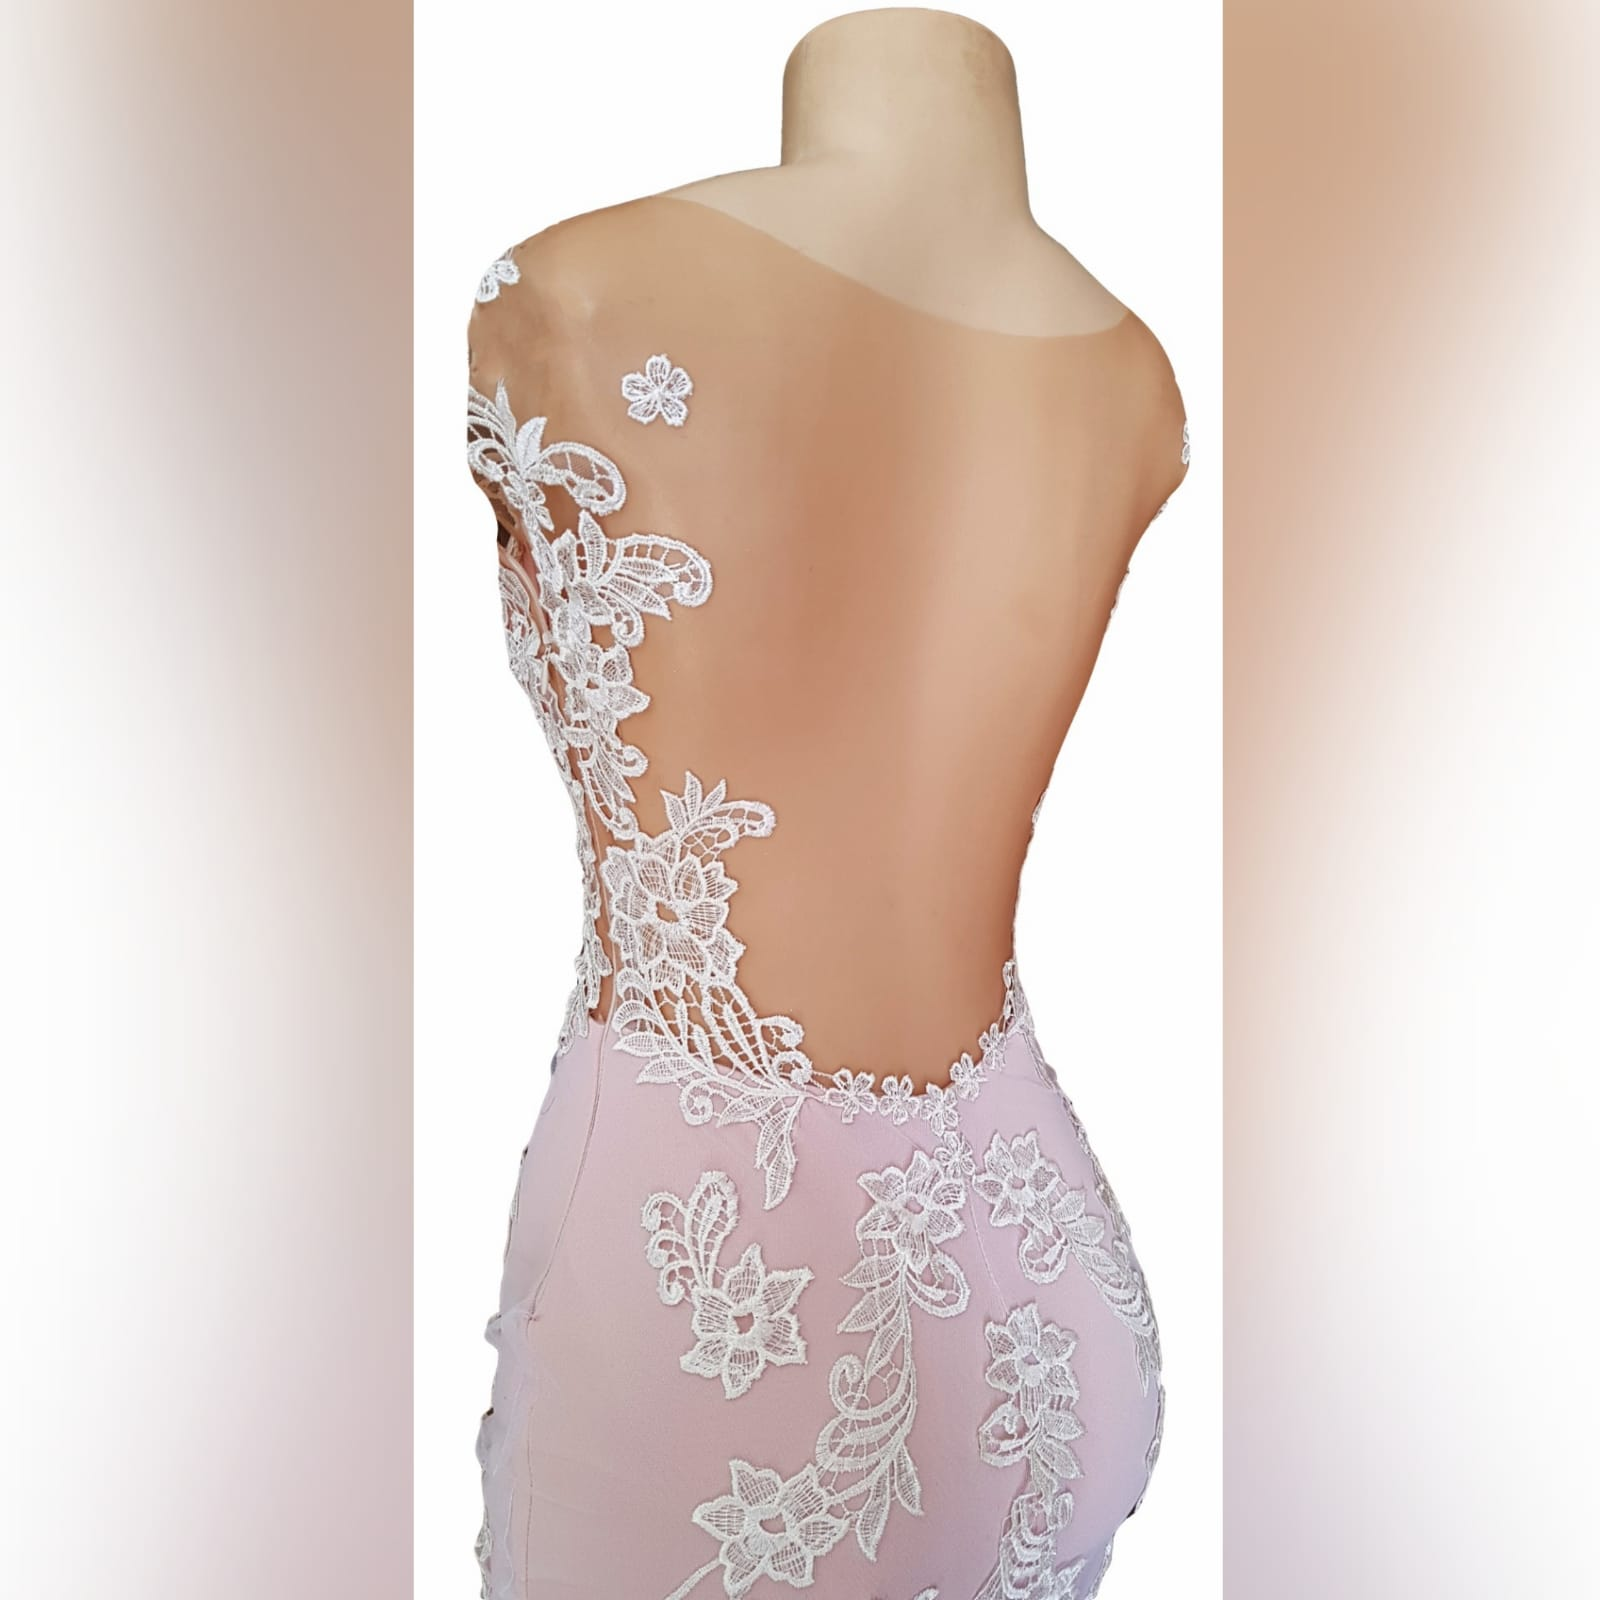 Pink and white lace soft mermaid prom dress 9 pink and white lace soft mermaid prom dress with an illusion bodice detailed with lace, an illusion open back. Bottom with an overlayer of tulle detailed with lace and a train.